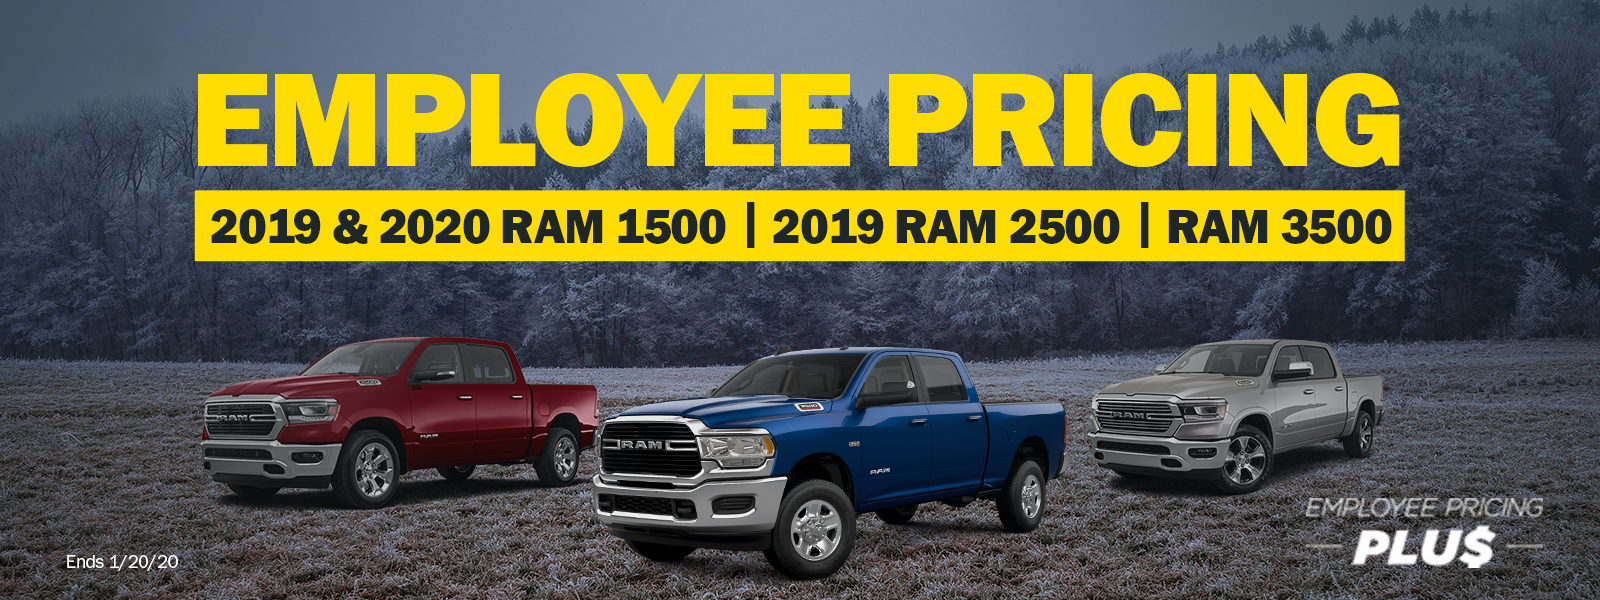 RAM Employee Pricing